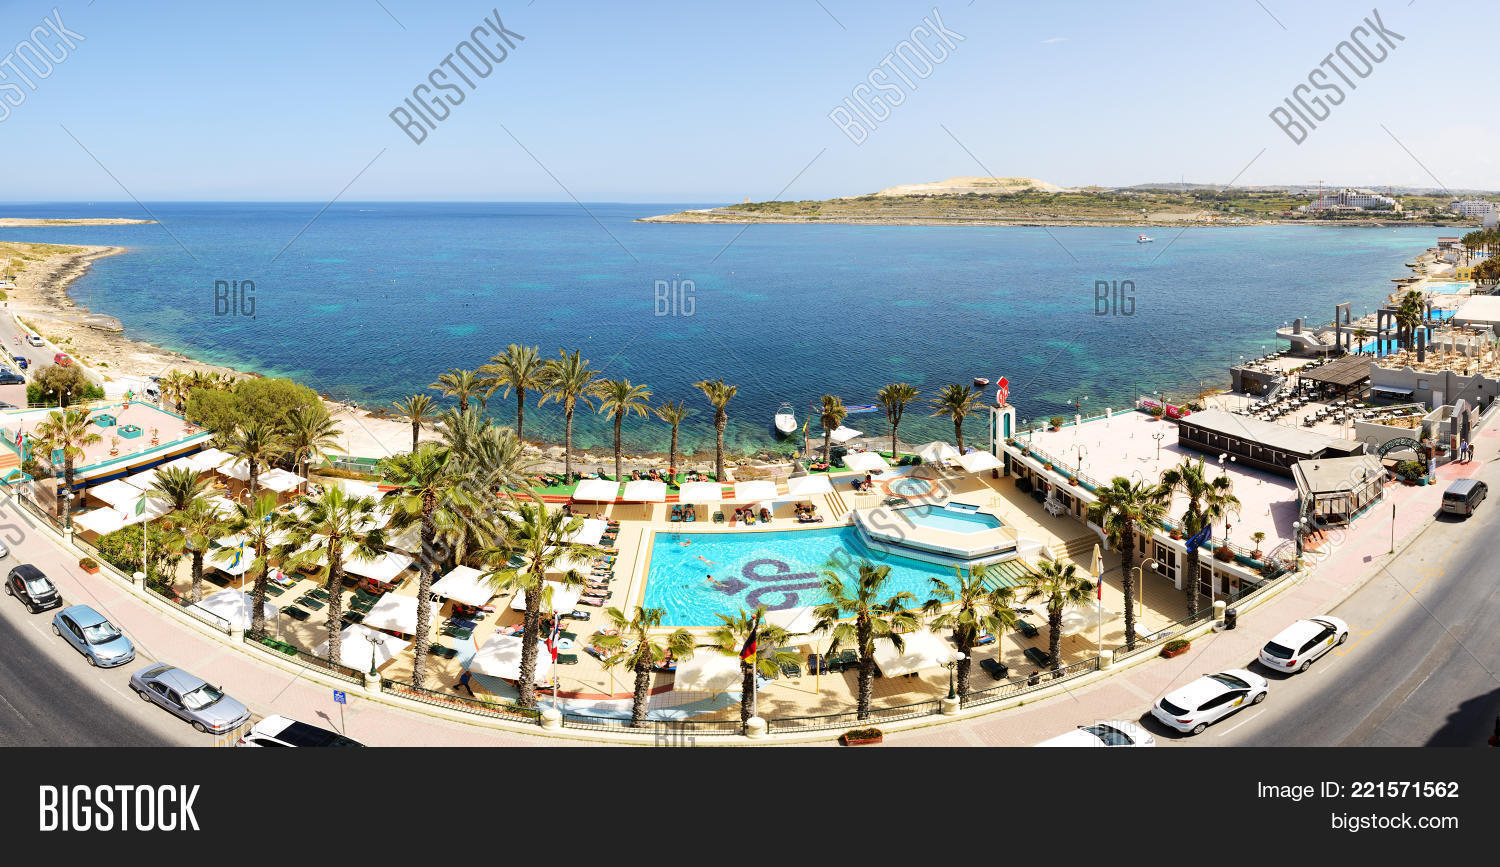 BUGIBBA MALTA APRIL Tourists Image Photo Bigstock - Malta vacation